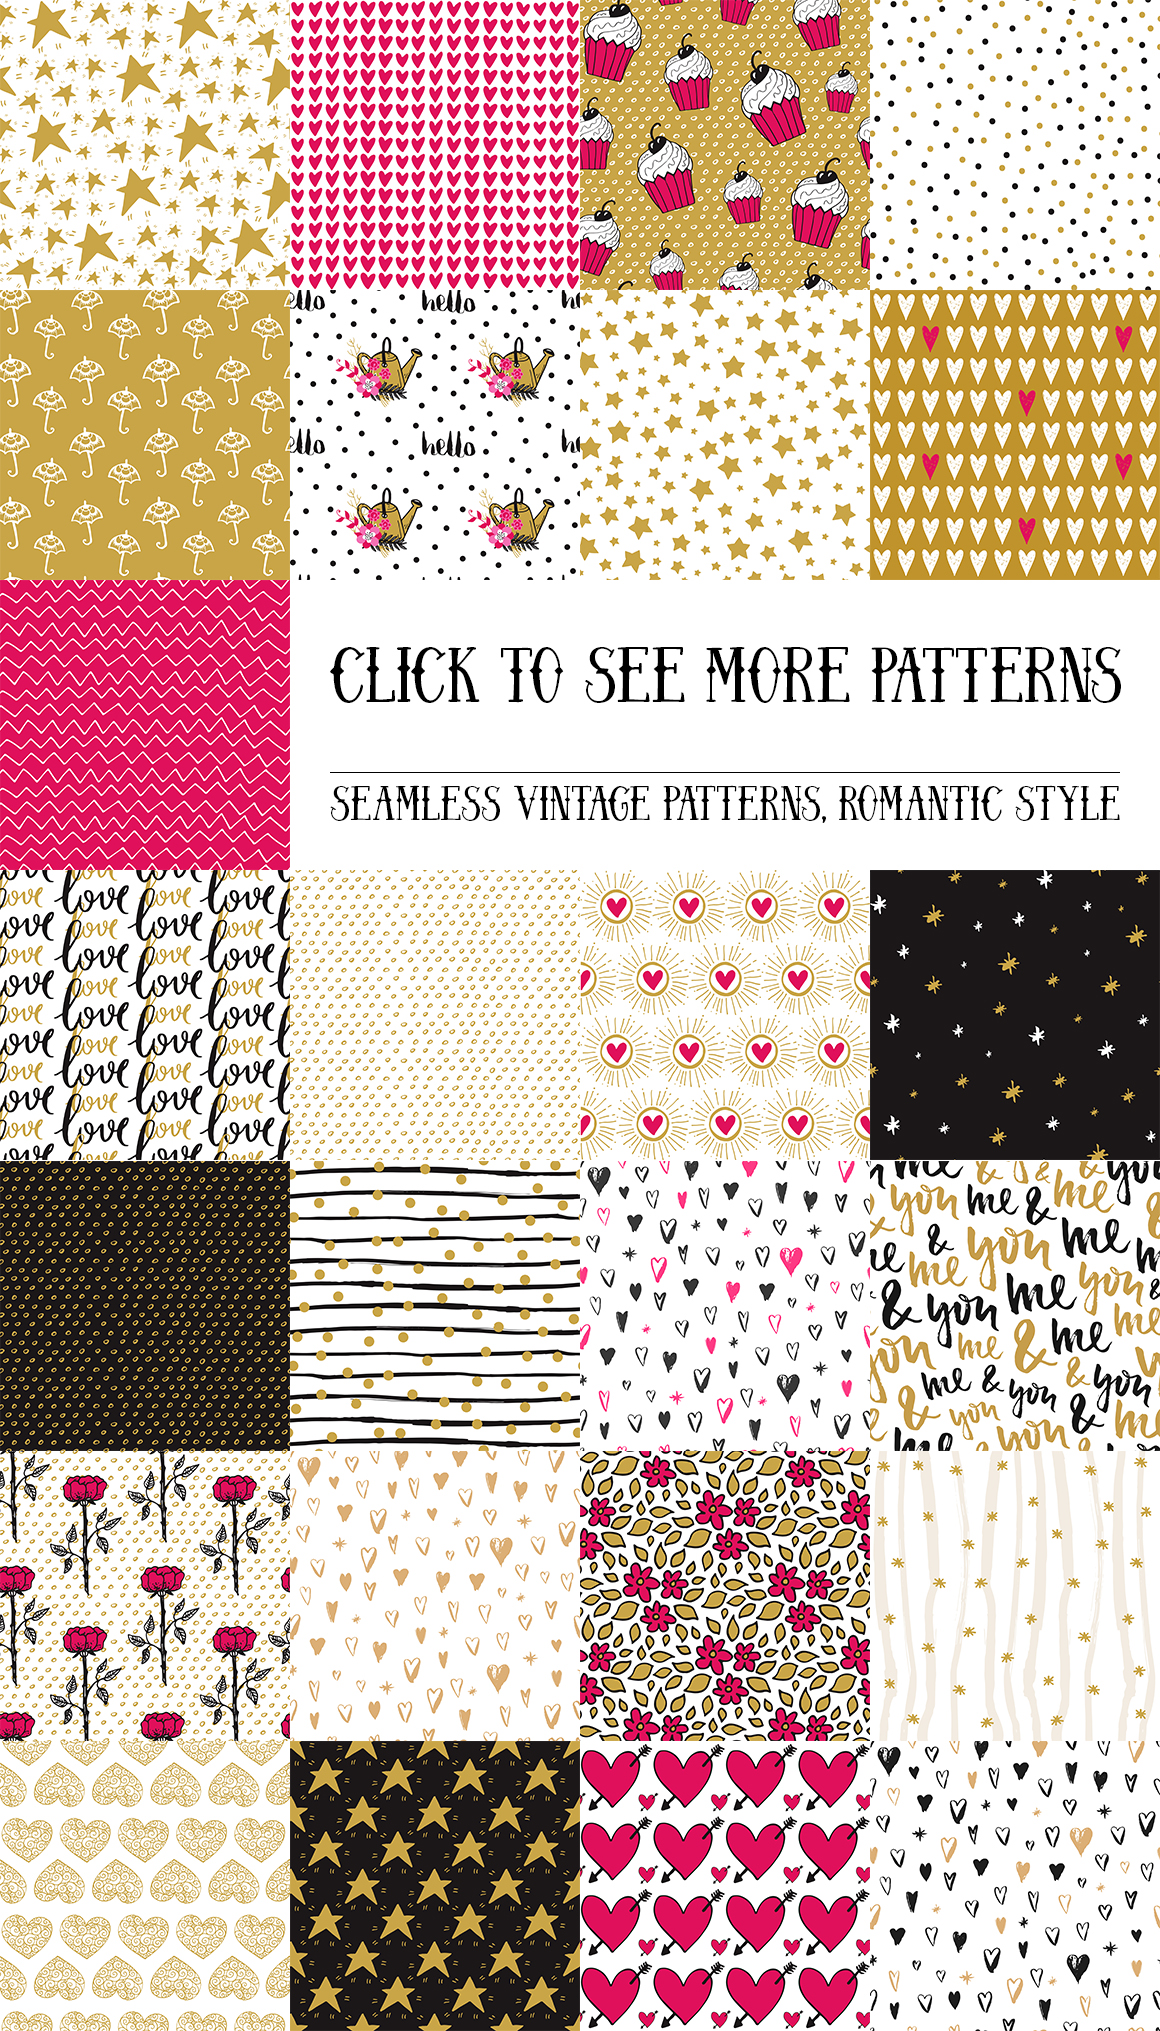 50 Valentine's Day Seamless Patterns example image 2